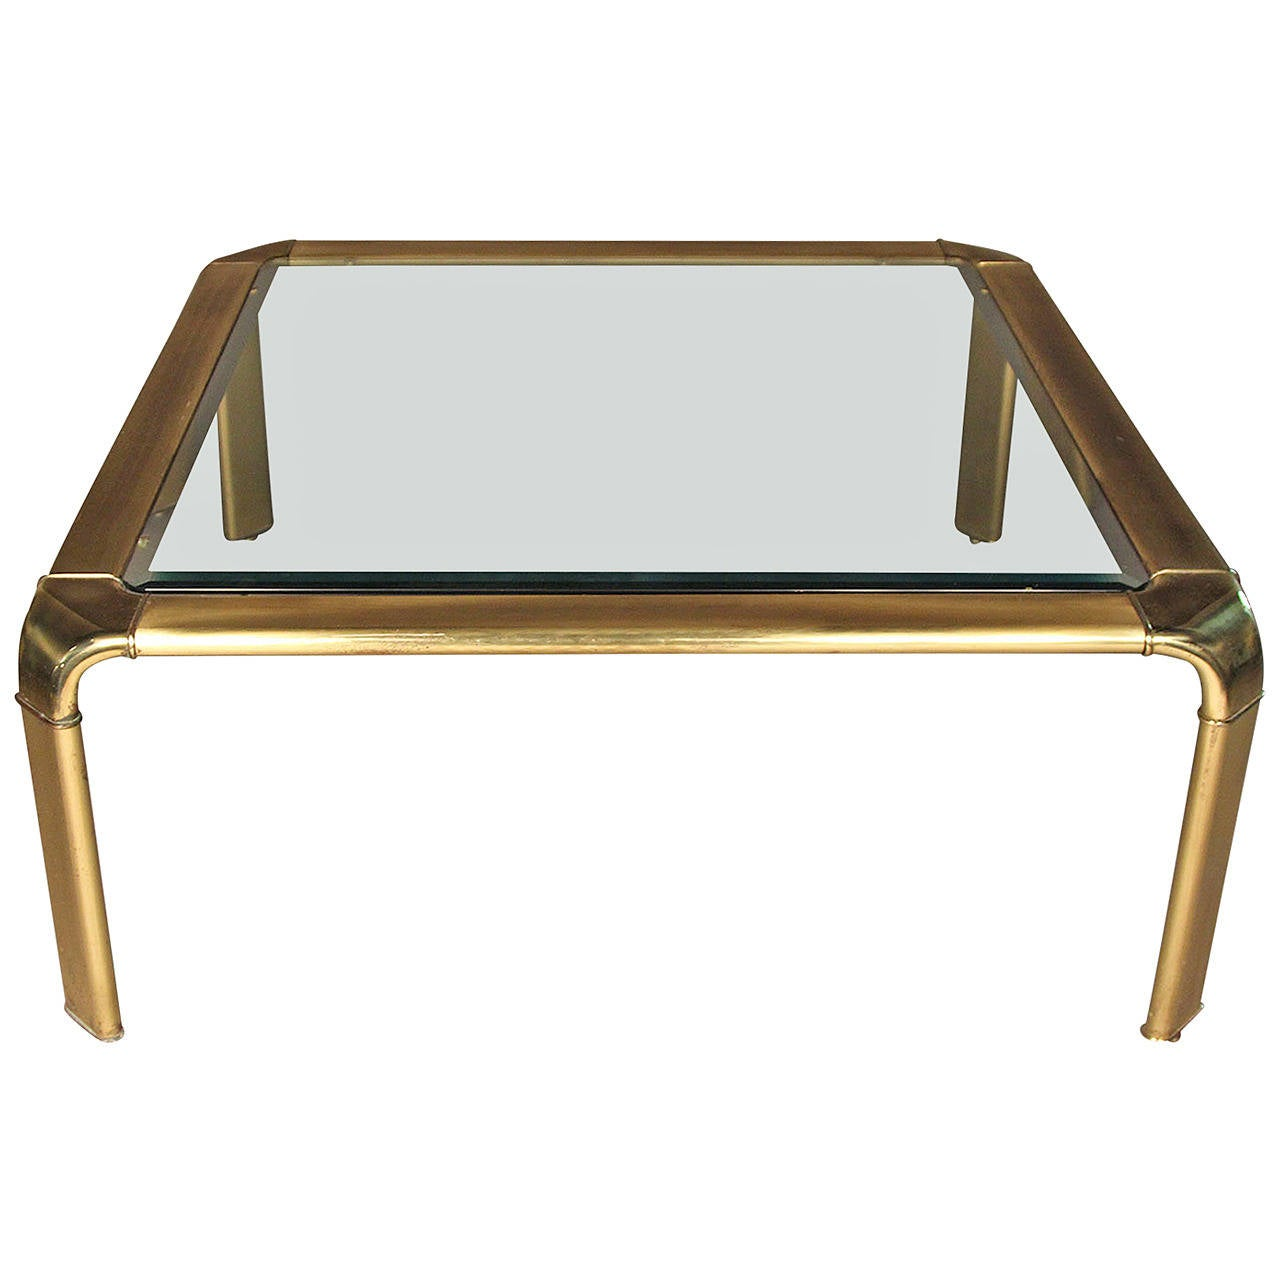 Brass And Glass Coffee Table In Square Shape At 1stdibs